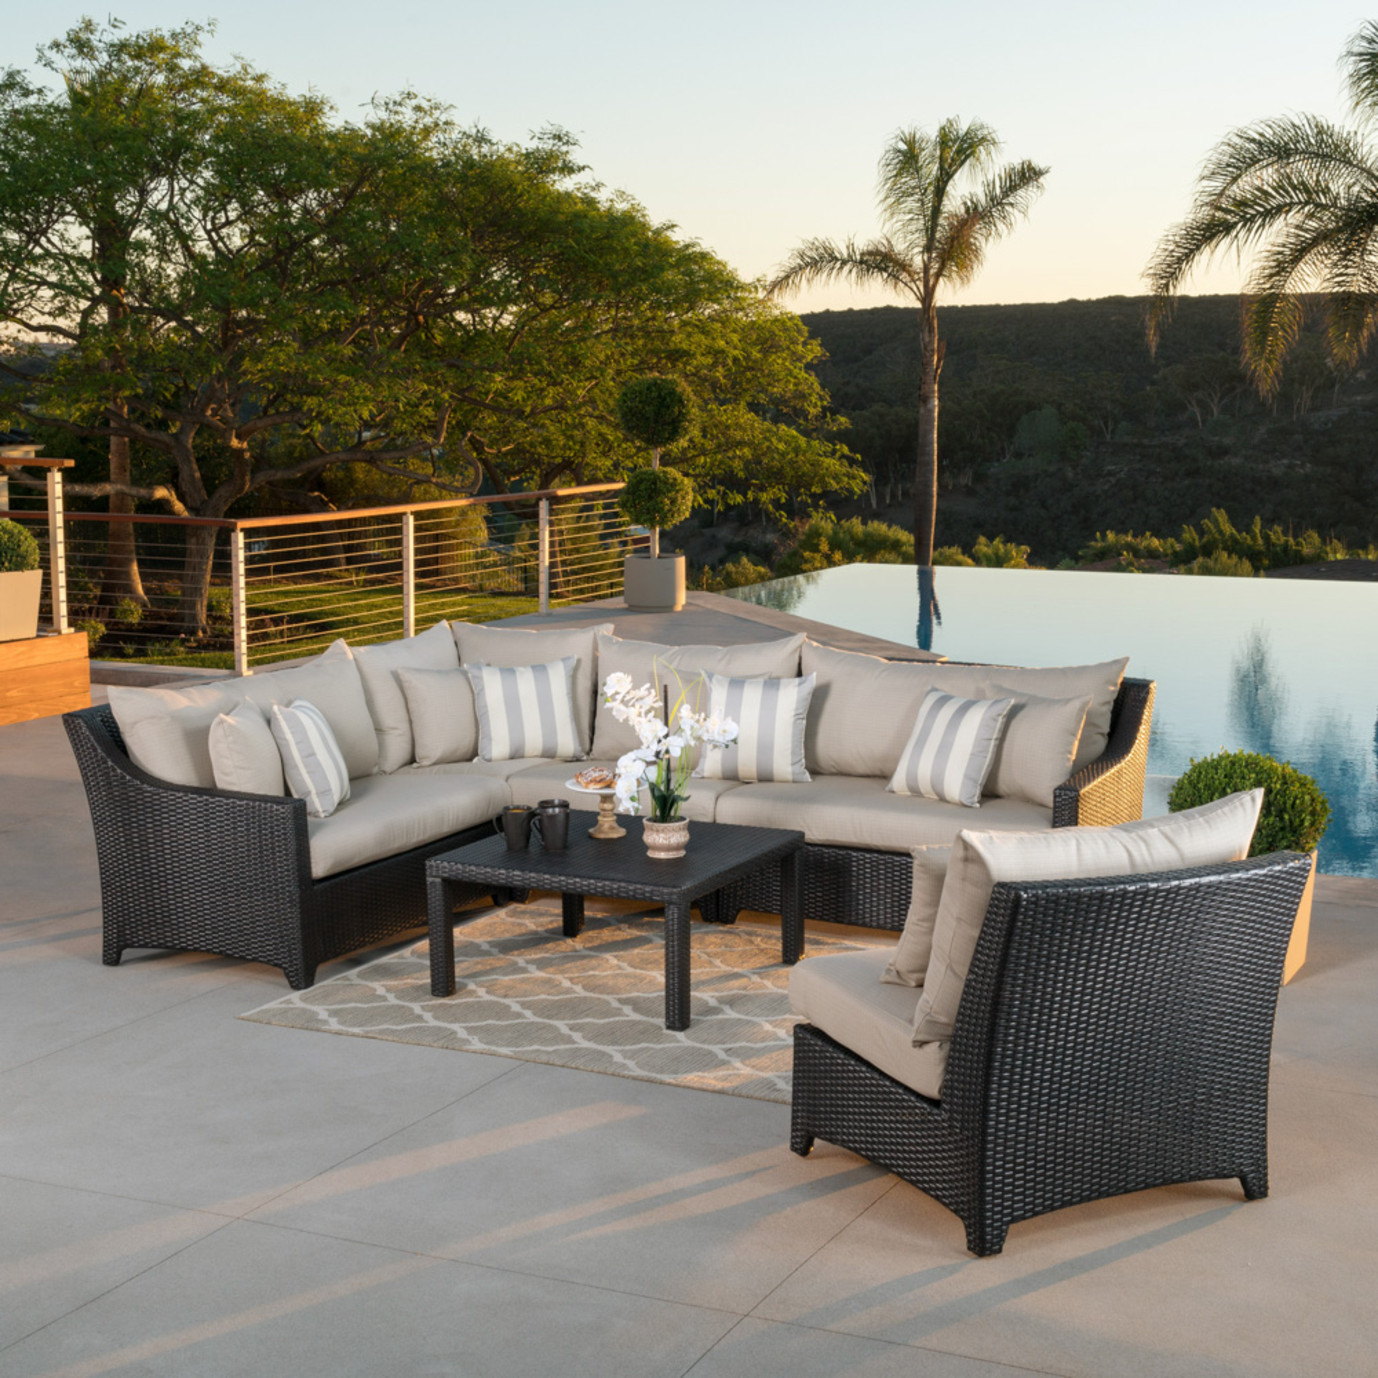 Deco™ 6pc Sectional and Table - Slate Grey